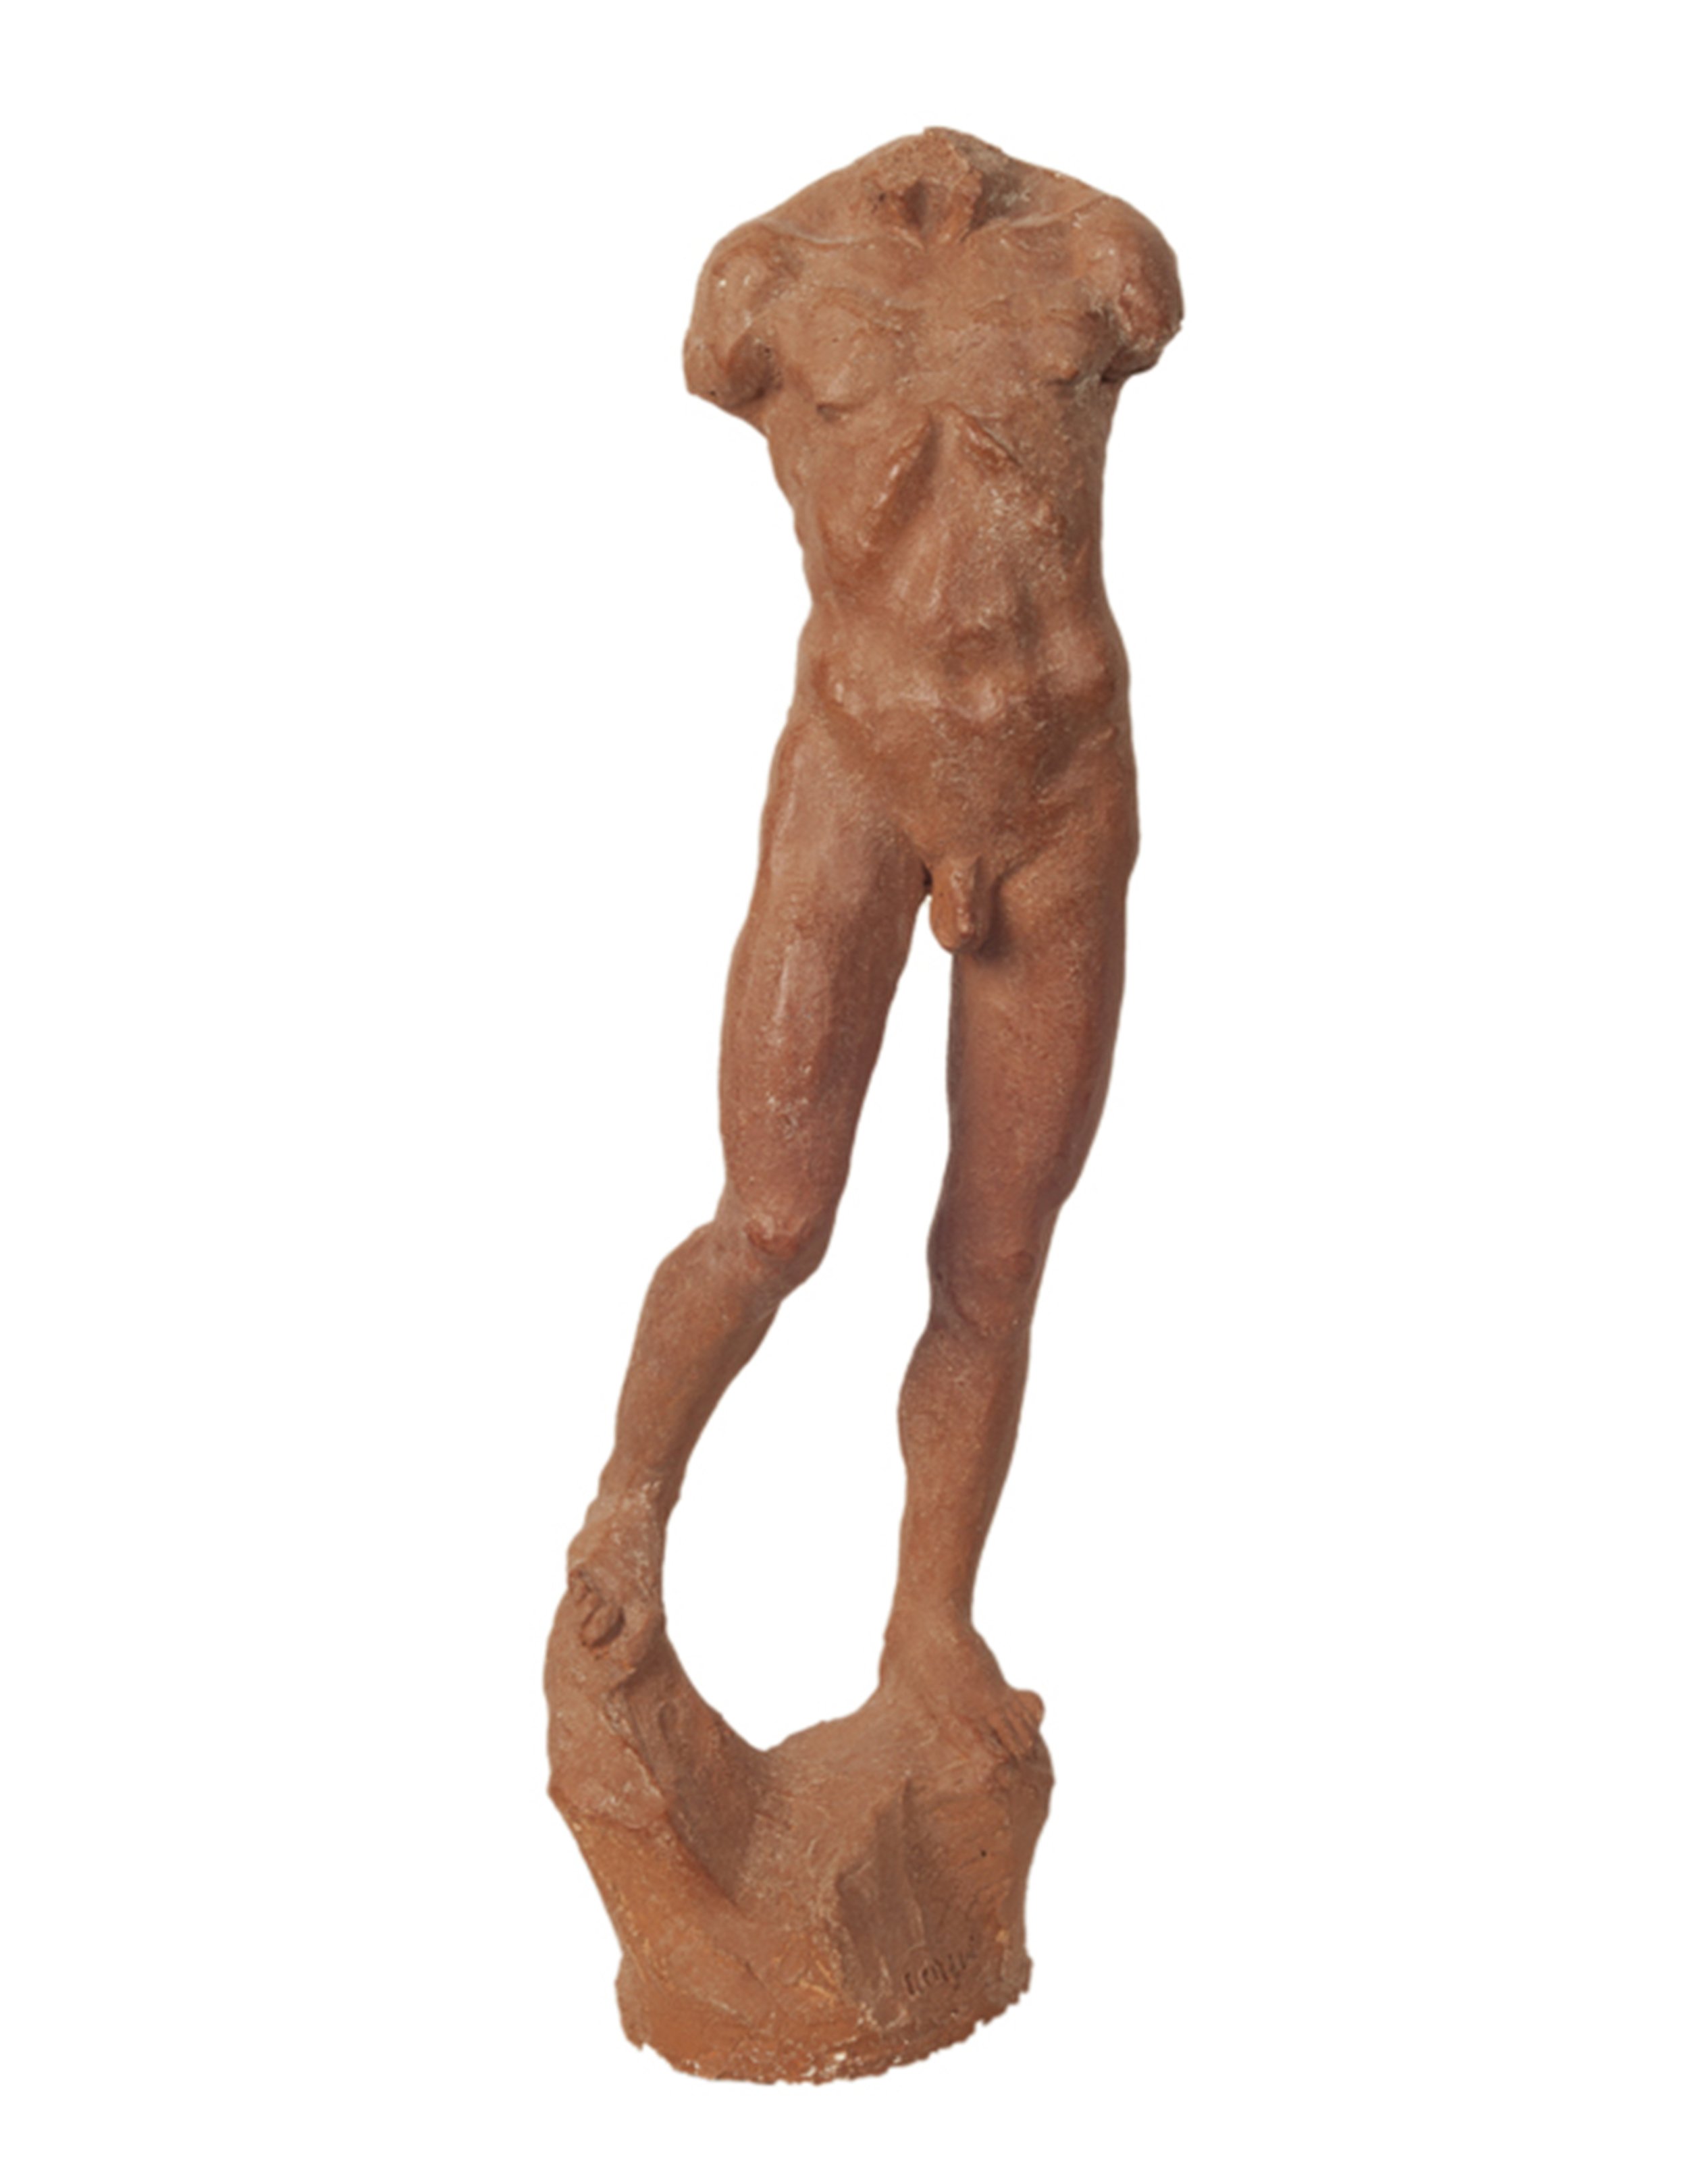 """Studio di Figura,"" 2011, terracotta, 45x13x10 in."